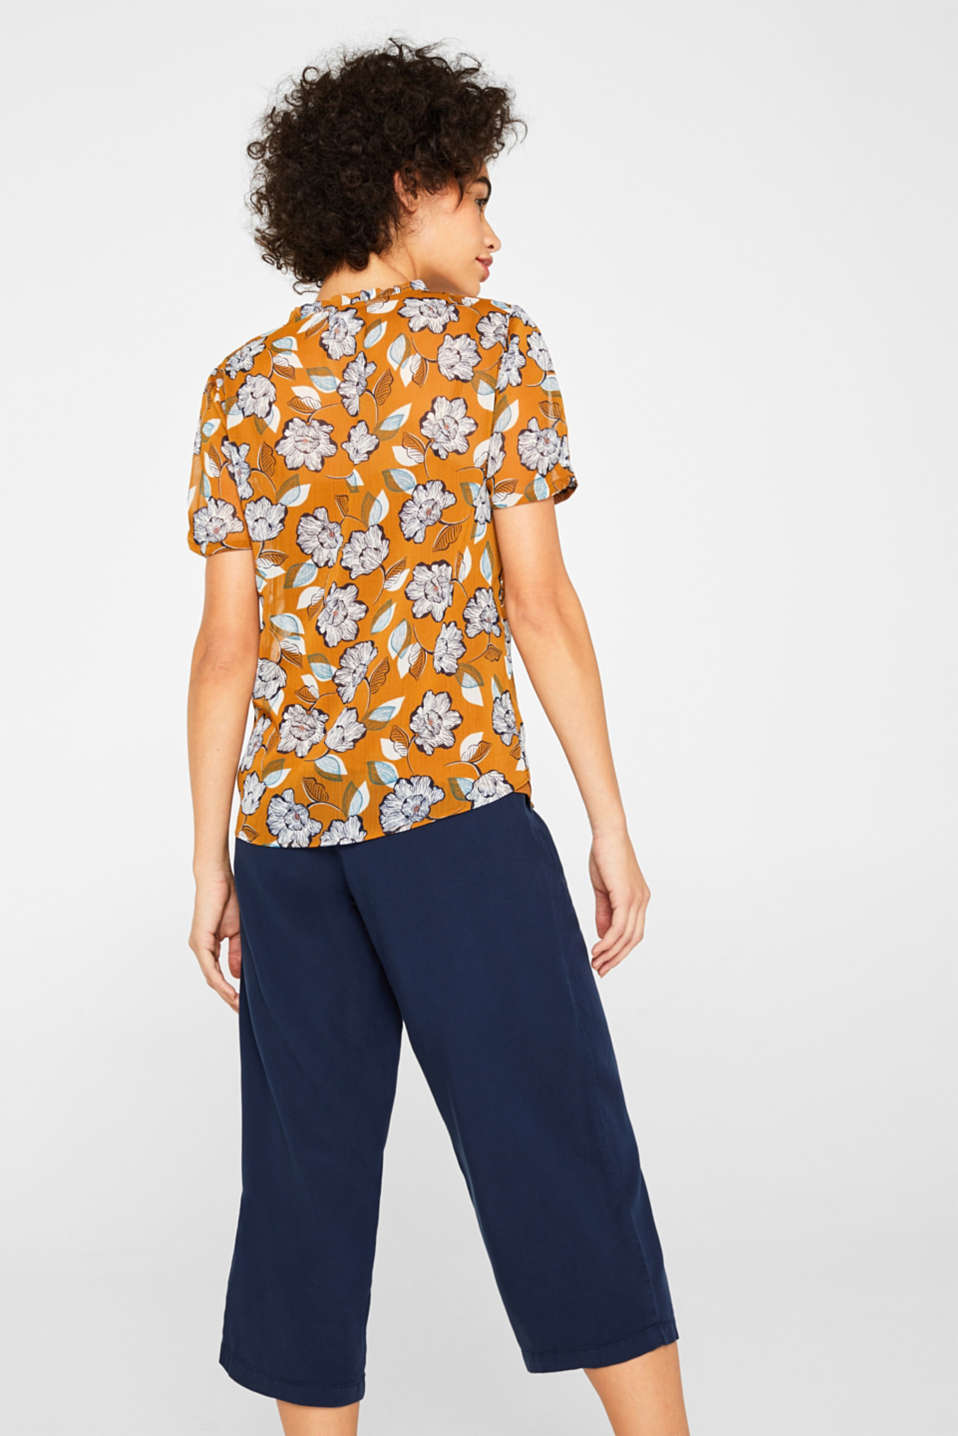 2-in-1 blouse top in crinkle chiffon, TOFFEE, detail image number 3